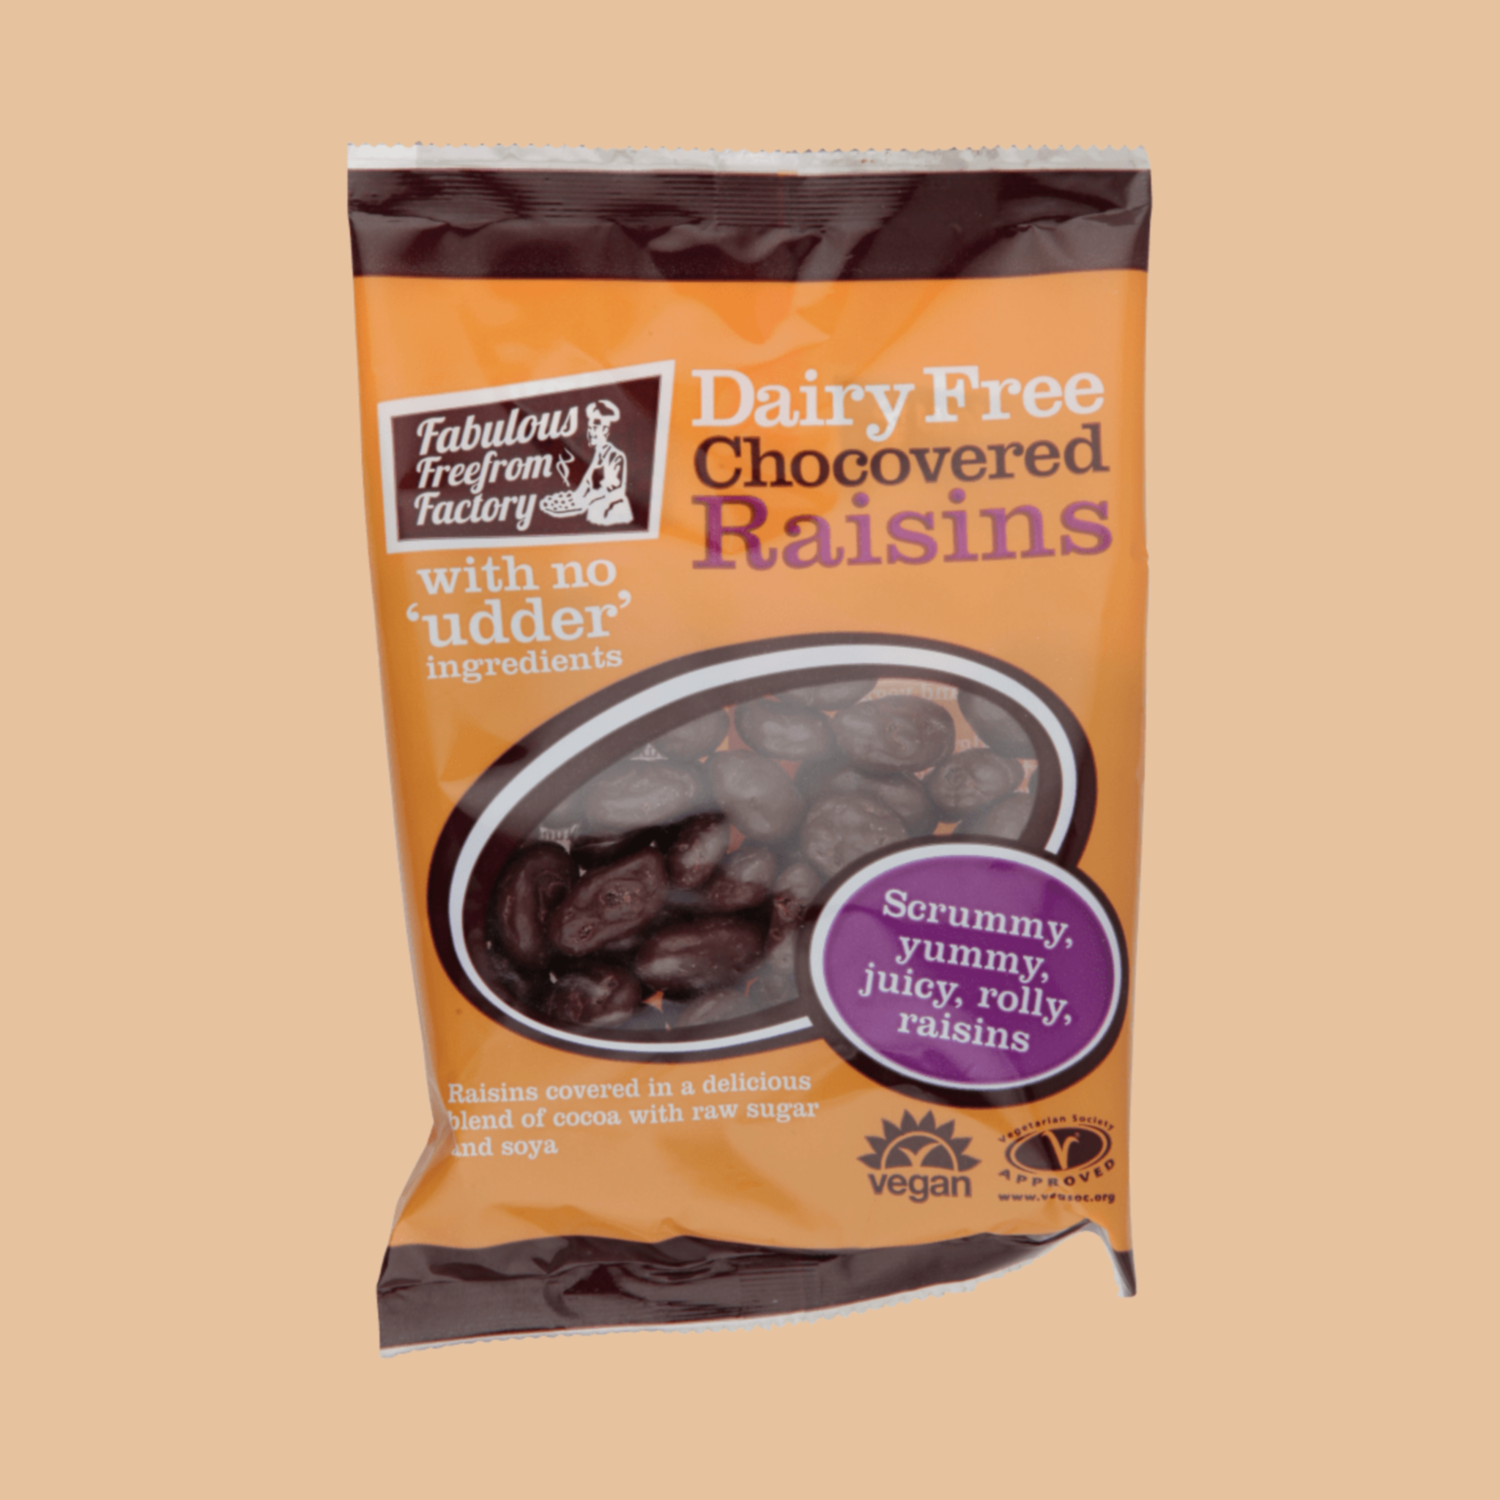 Fabulous Freefrom Factory: Chocolate Covered Raisins